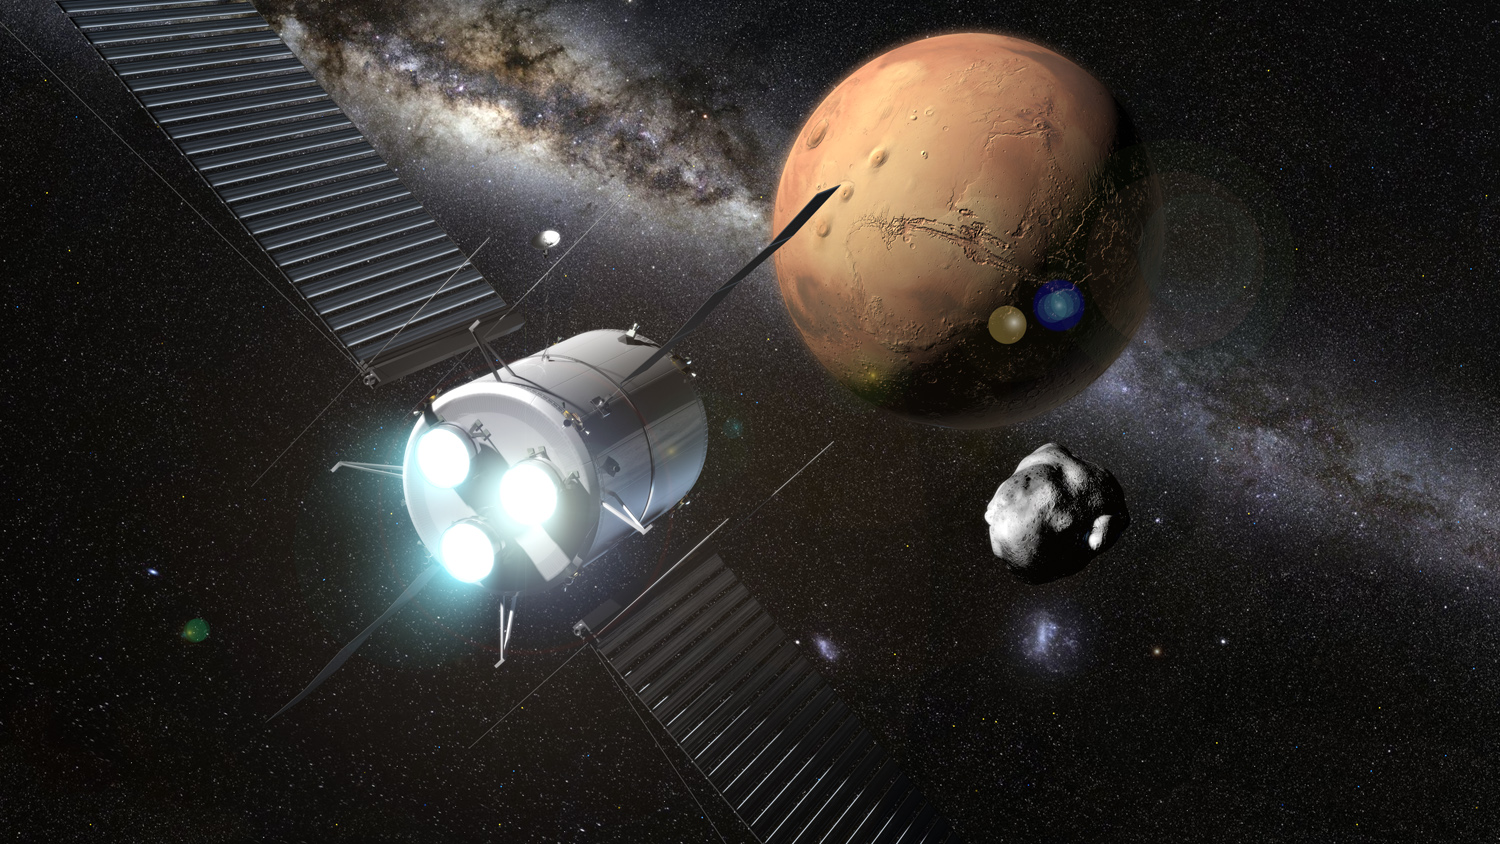 Artist's conception of a solar electric propulsion spacecraft